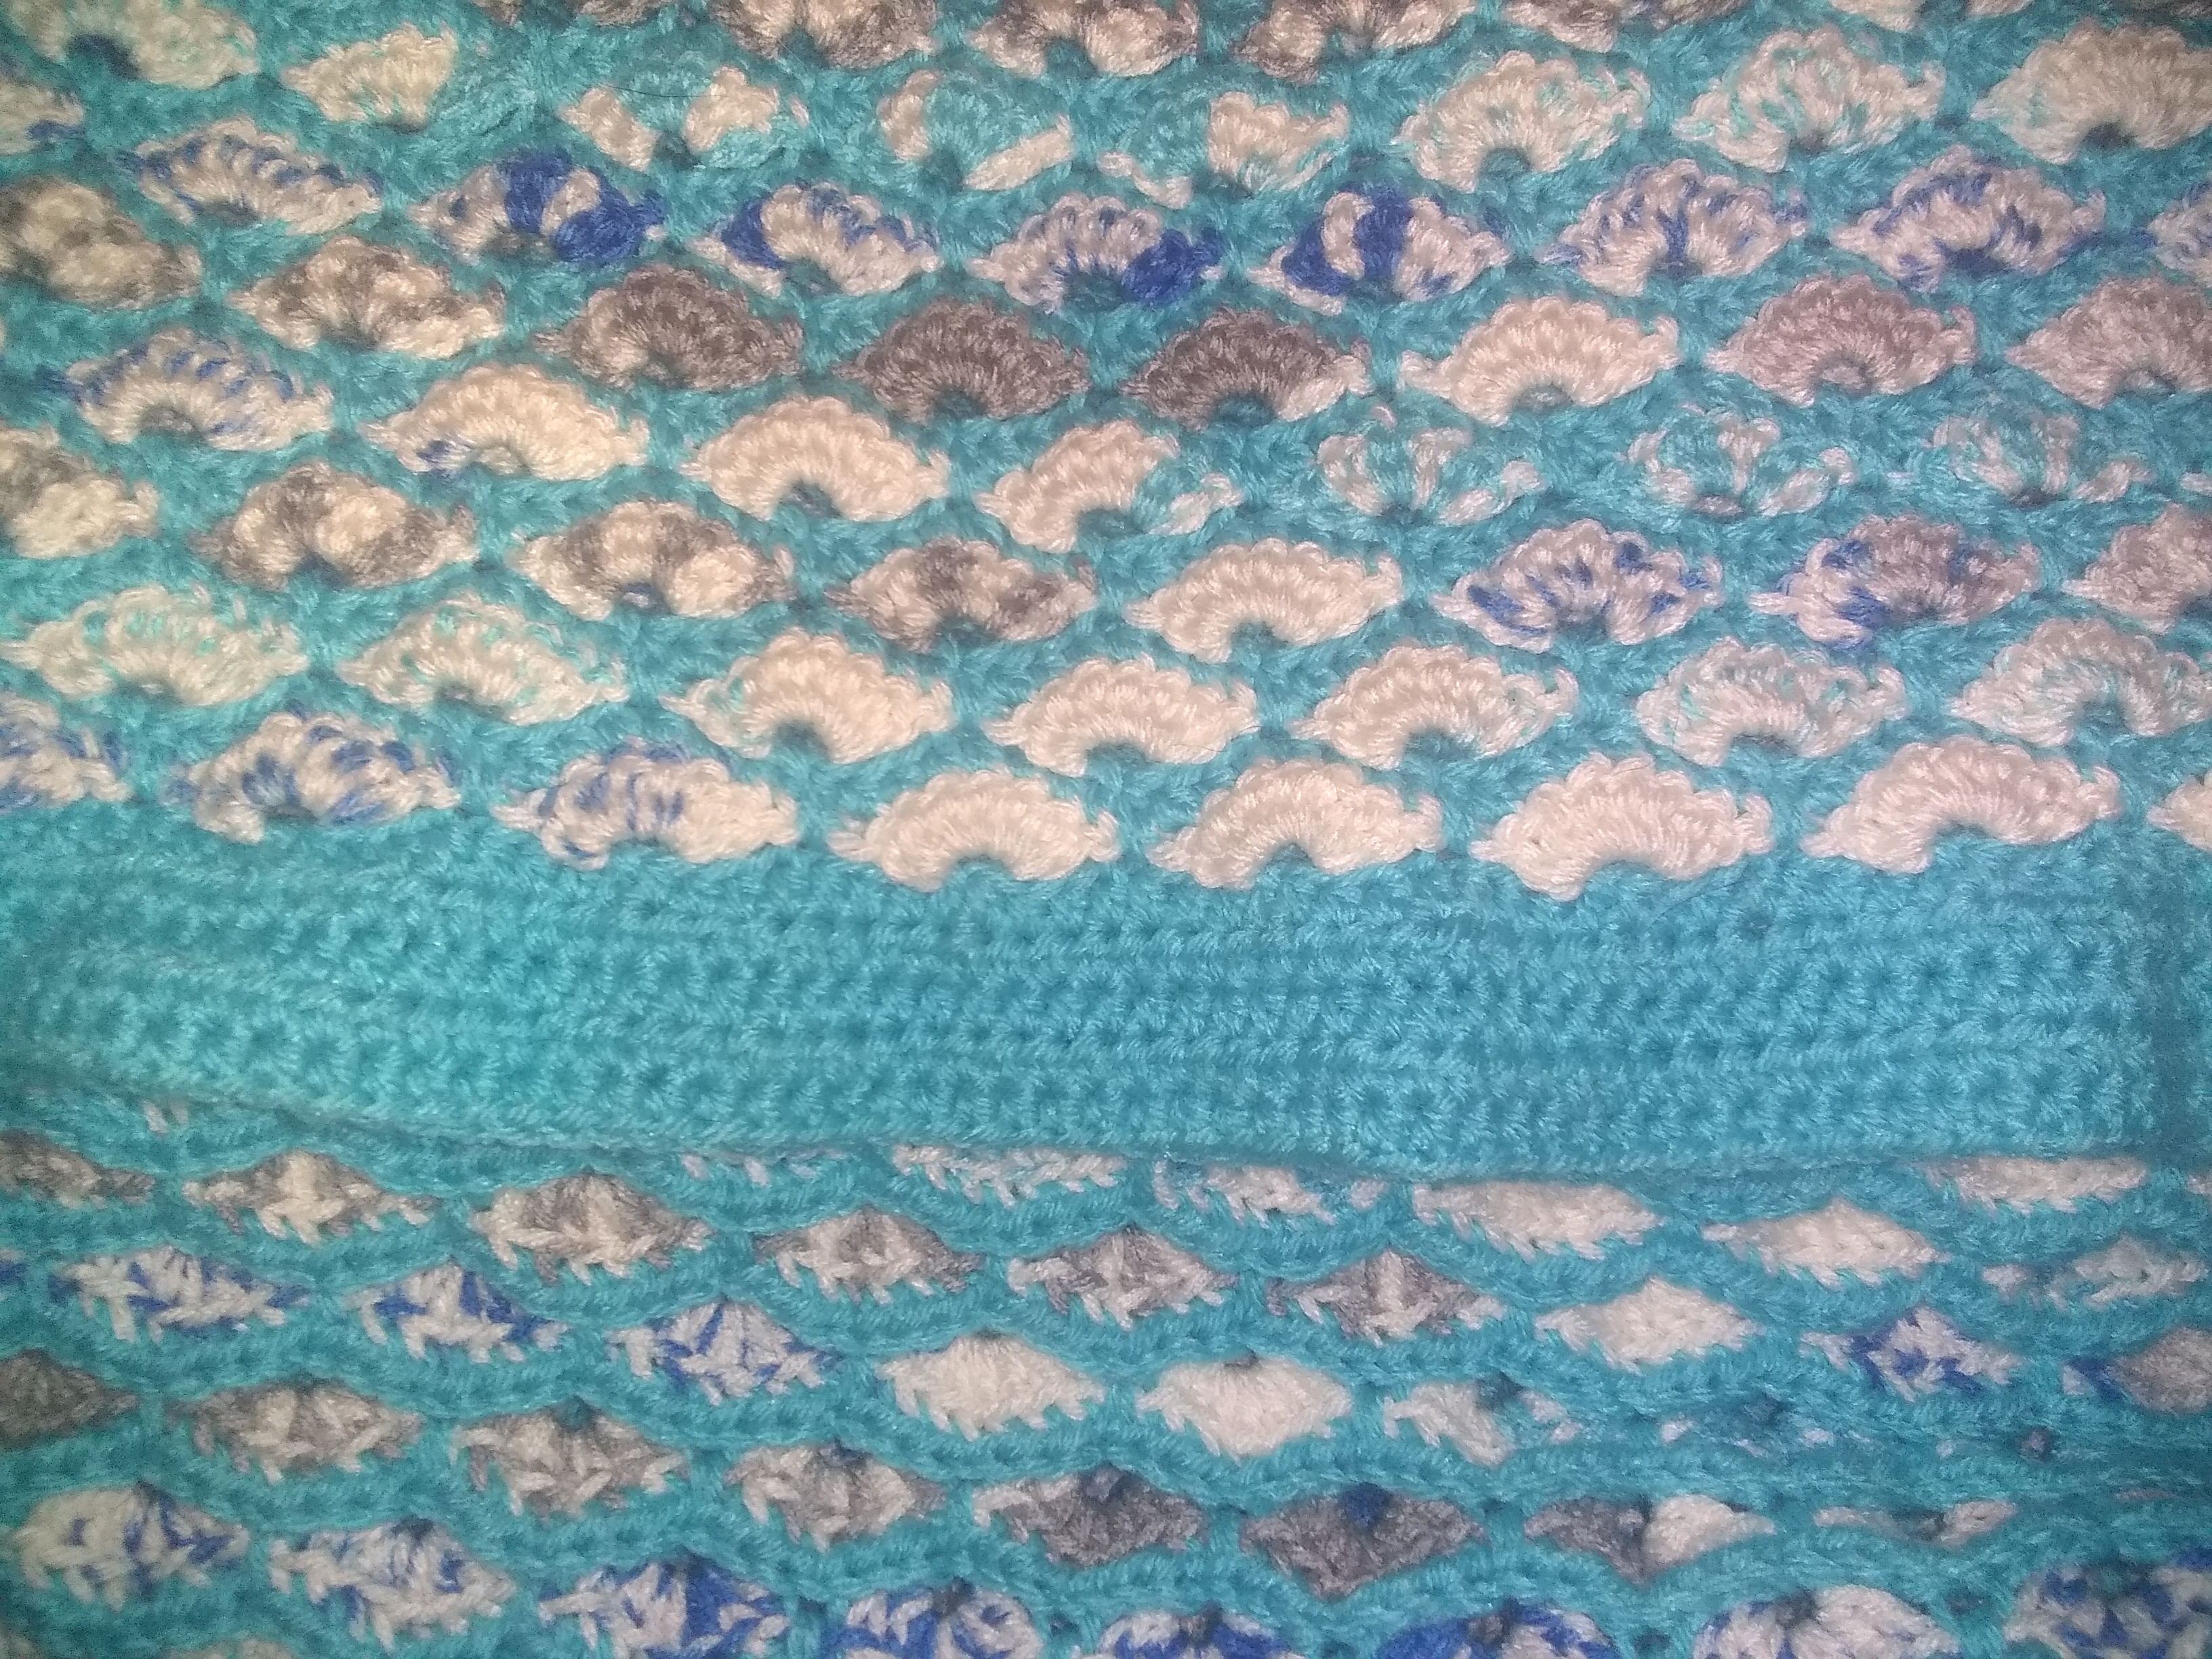 Meduim Teal & Variegated Blanket - L